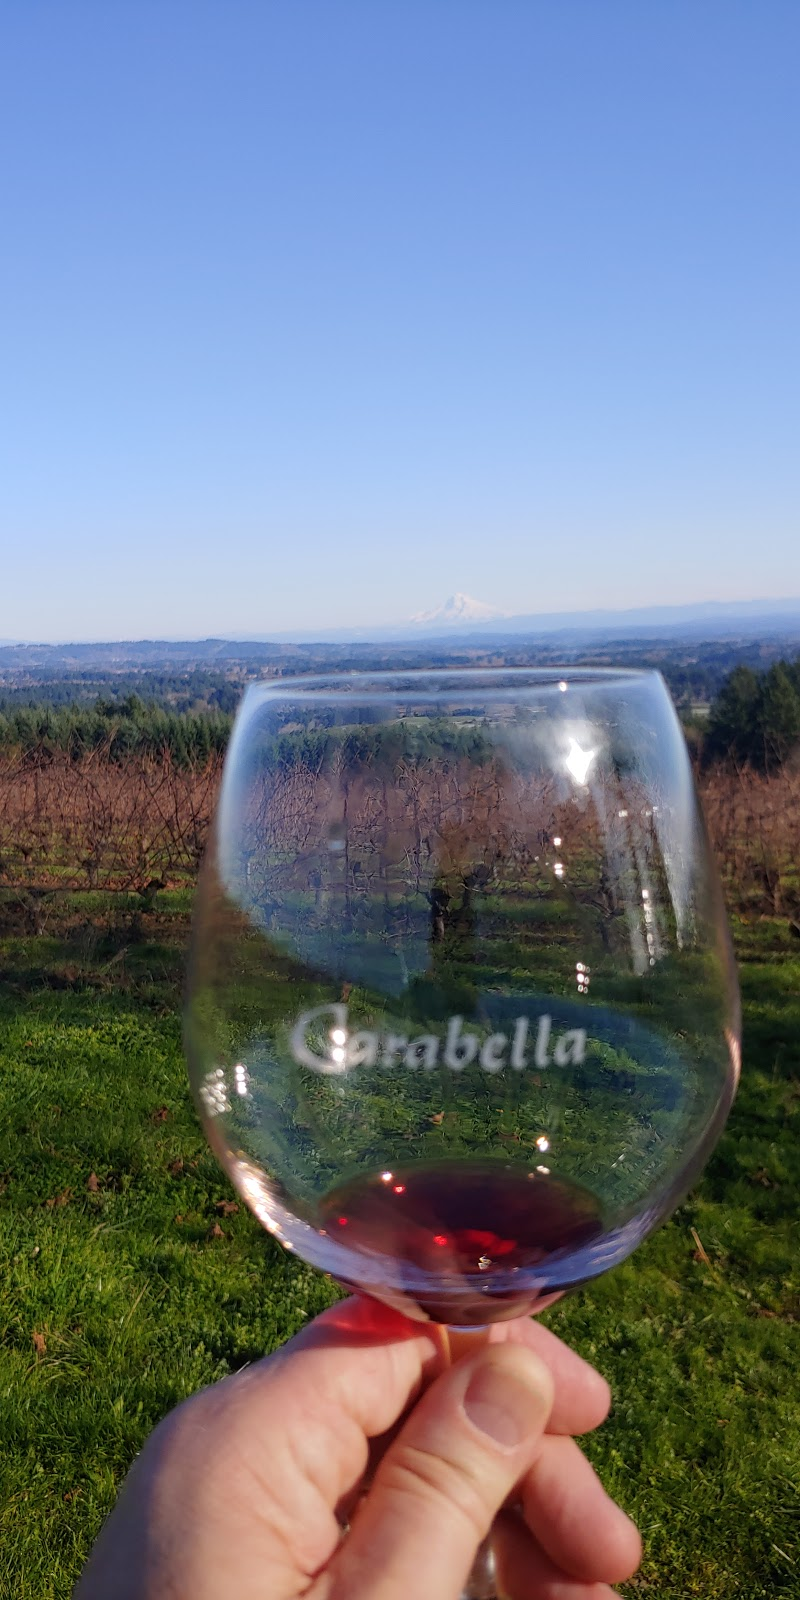 Carabella Vineyard